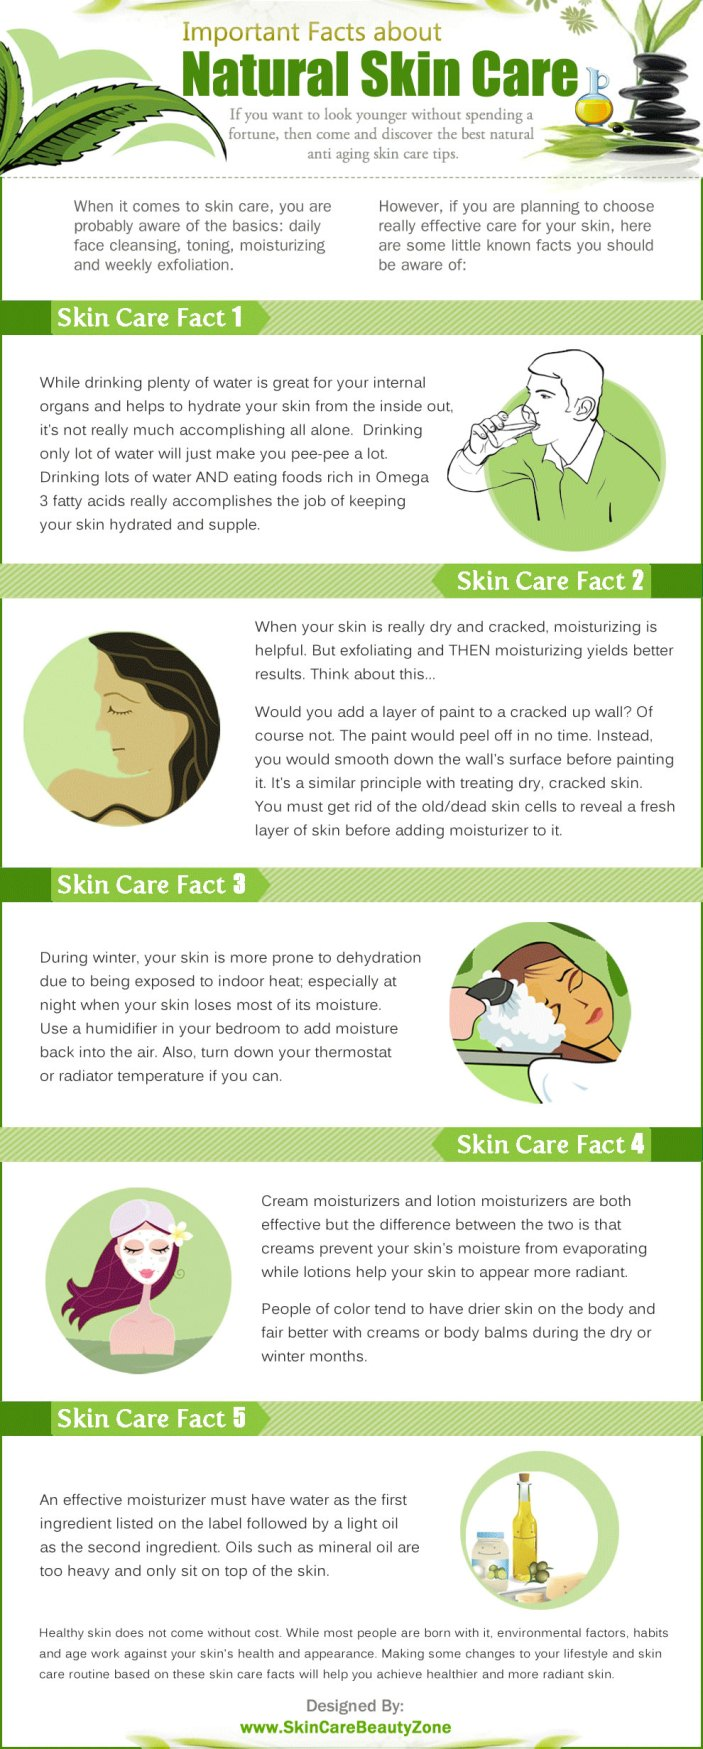 facts-about-natural-skin-care